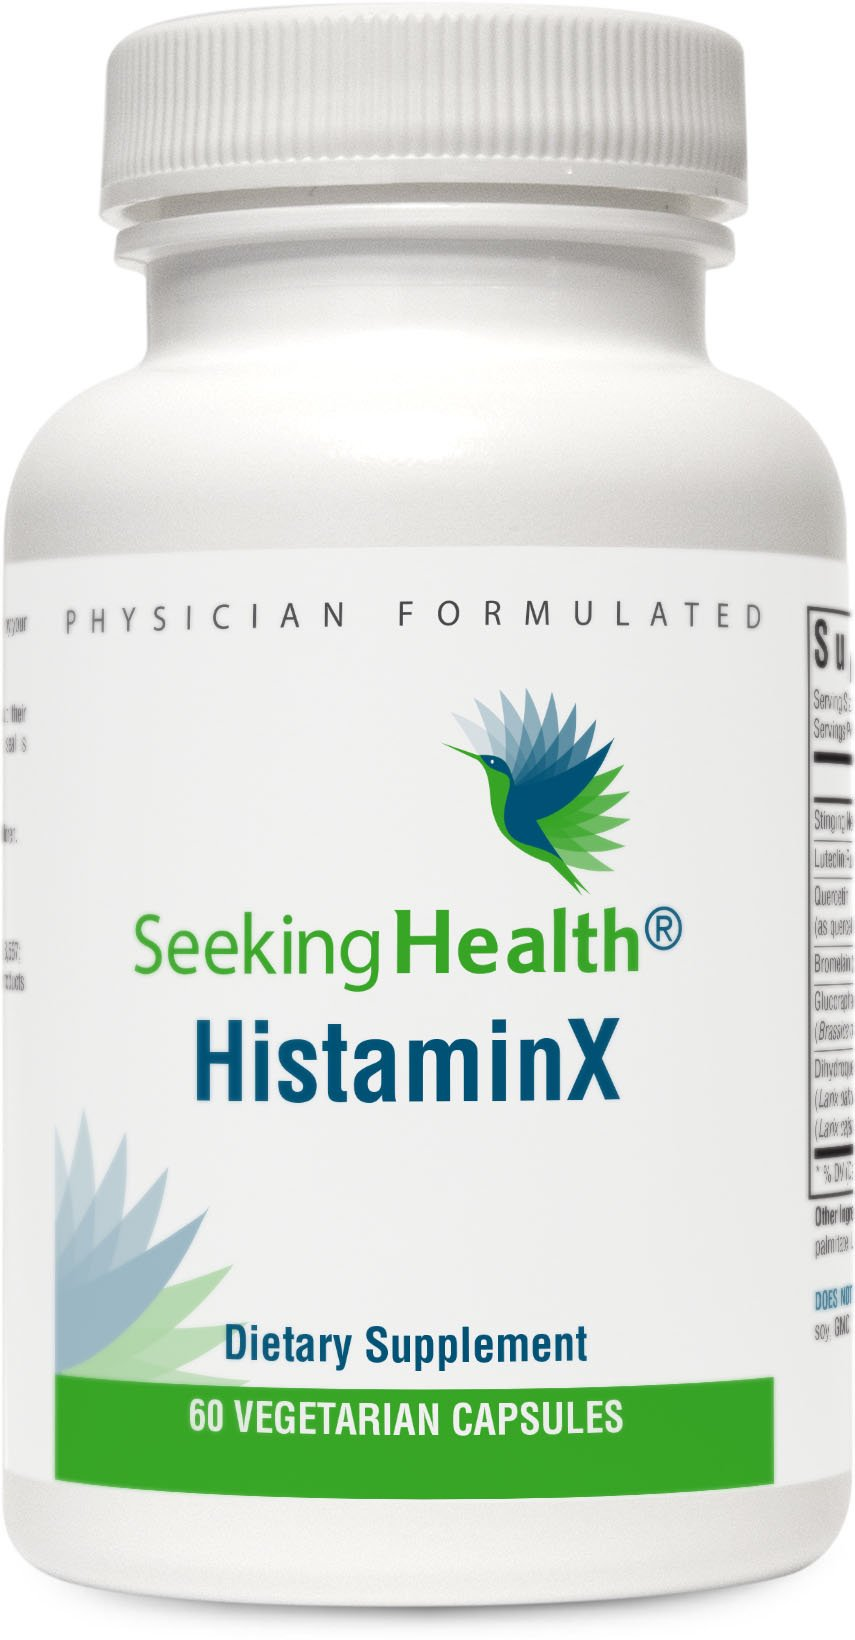 HistaminX | Natural Nettle, Quercetin, Rutin, Bromelain Blend with Broccoli Seed Extract | 60 Vegetarian Capsules | Seeking Health | Physician Formulated